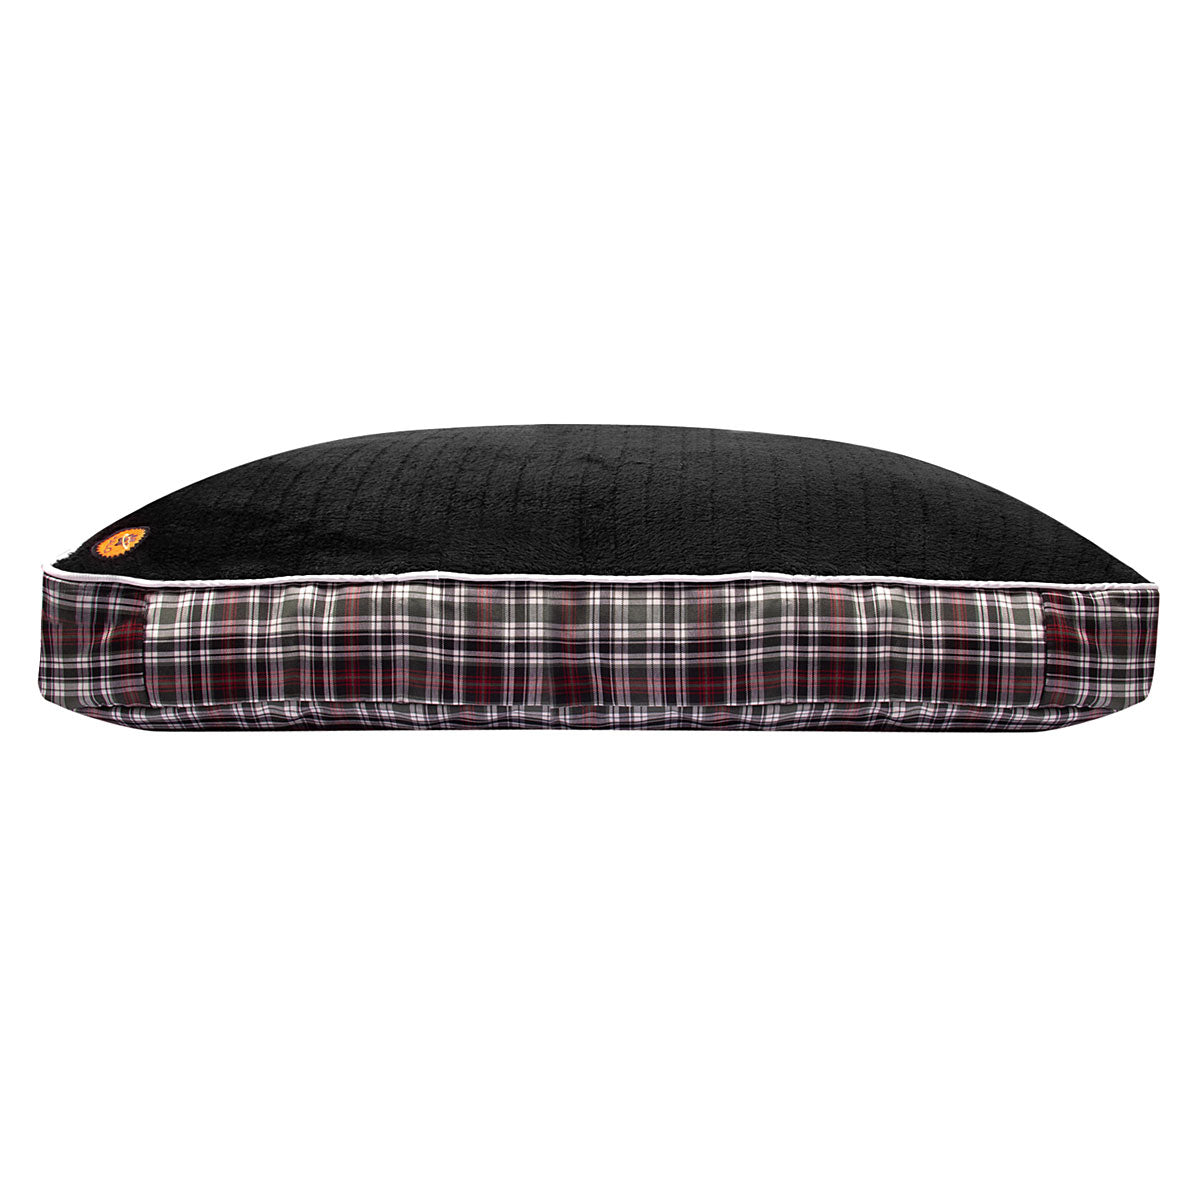 Halo Duck Green Plaid Rectangular Dog Bed - Halo - Breeches.com